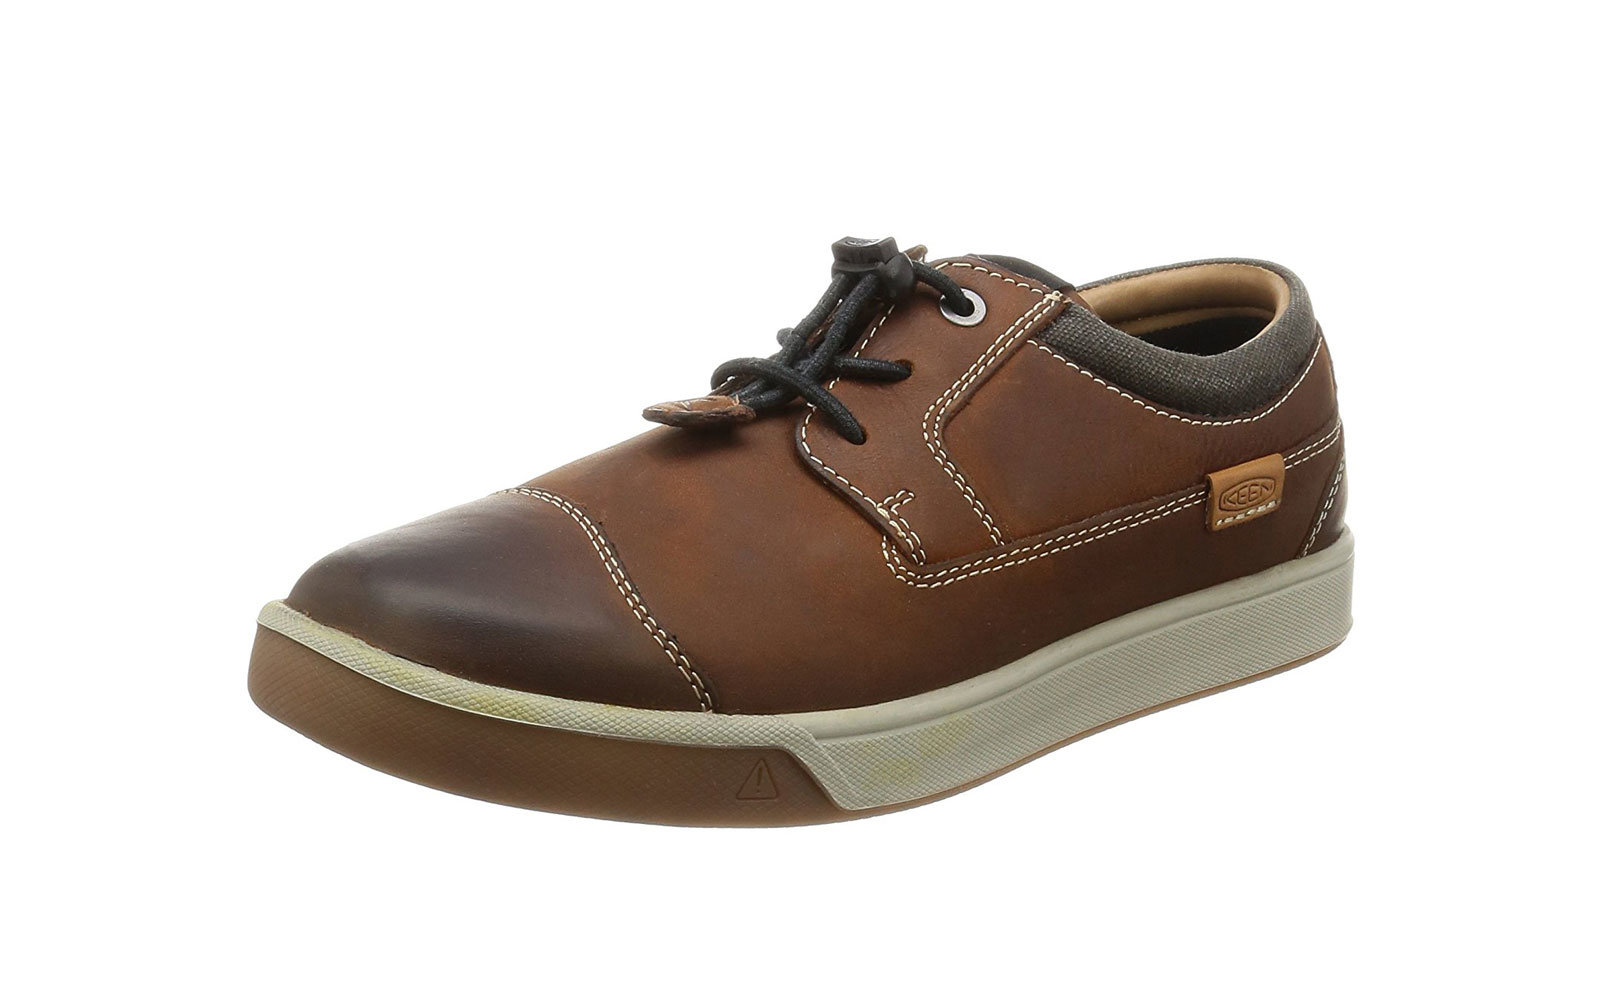 clarks mens walking shoes review